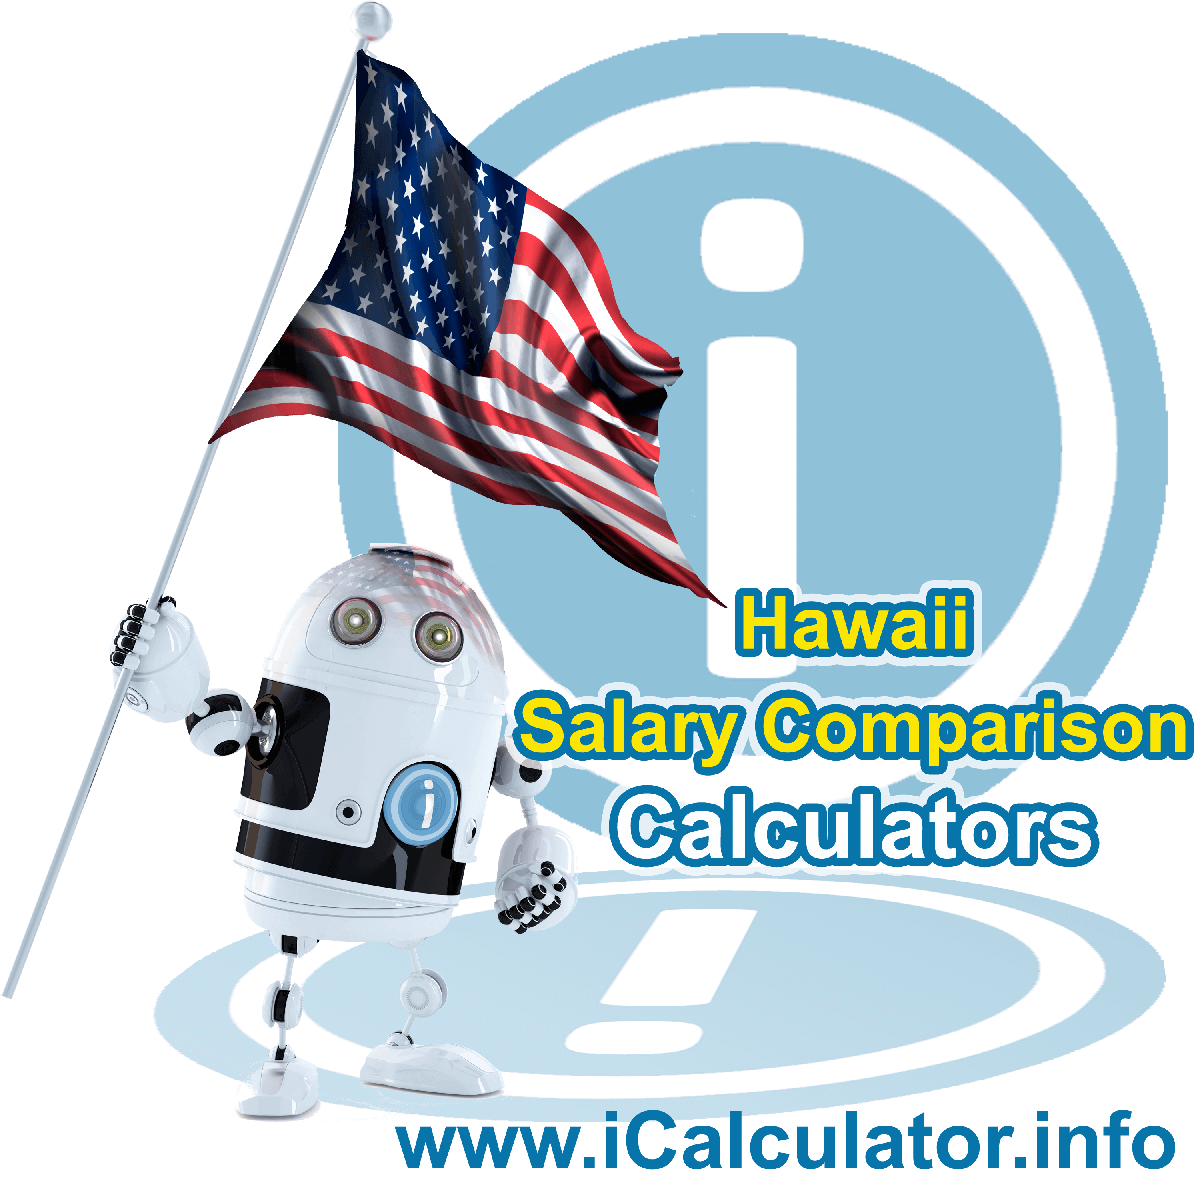 Hawaii Salary Comparison Calculator 2019 | iCalculator | The Hawaii Salary Comparison Calculator allows you to quickly calculate and compare upto 6 salaries in Hawaii or between other states for the 2019 tax year and historical tax years. Its an excellent tool for jobseekers, pay raise comparison and comparison of salaries between different US States